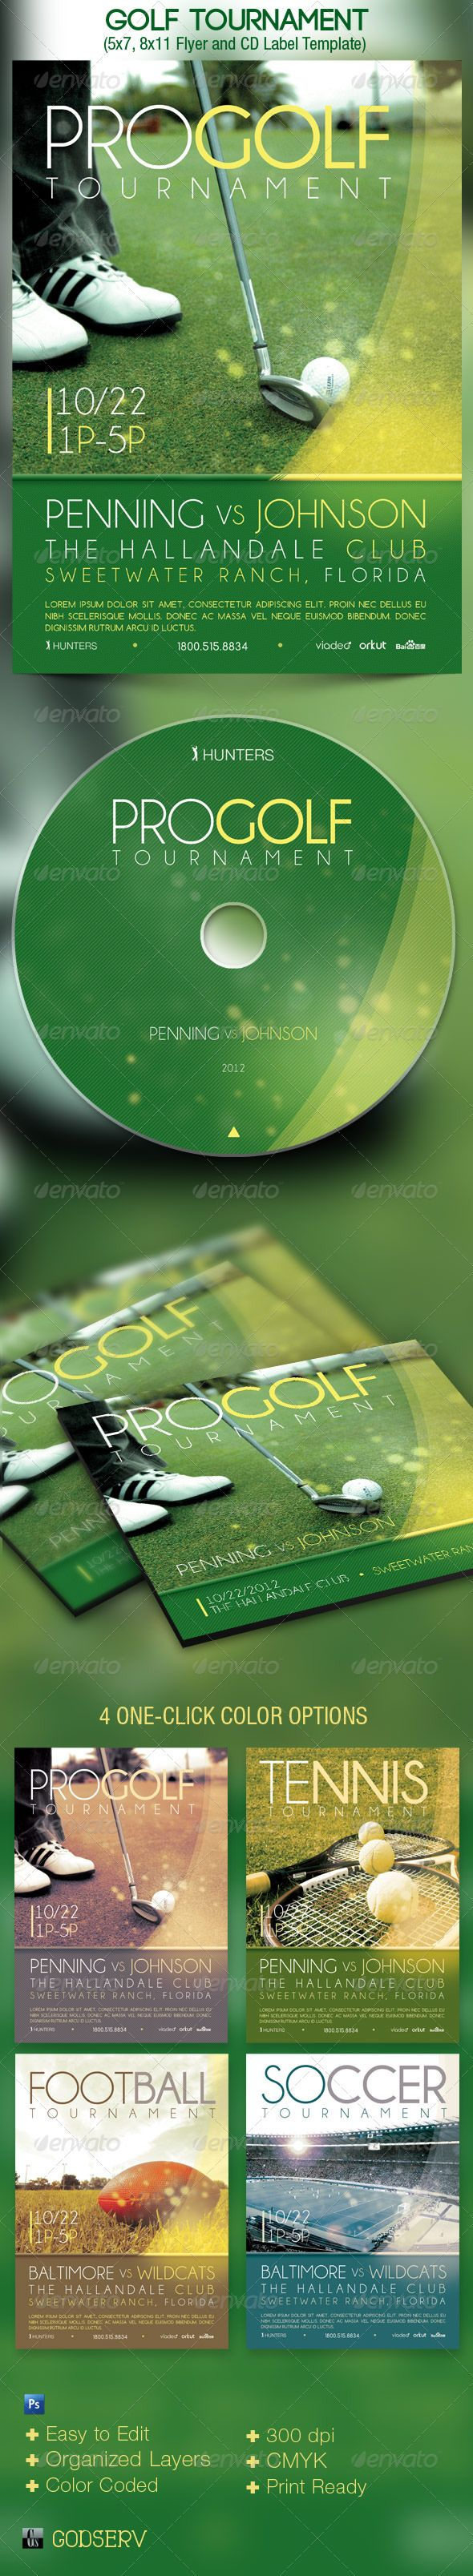 Golf Tournament Event Flyer Cd Template  Cd Labels Label